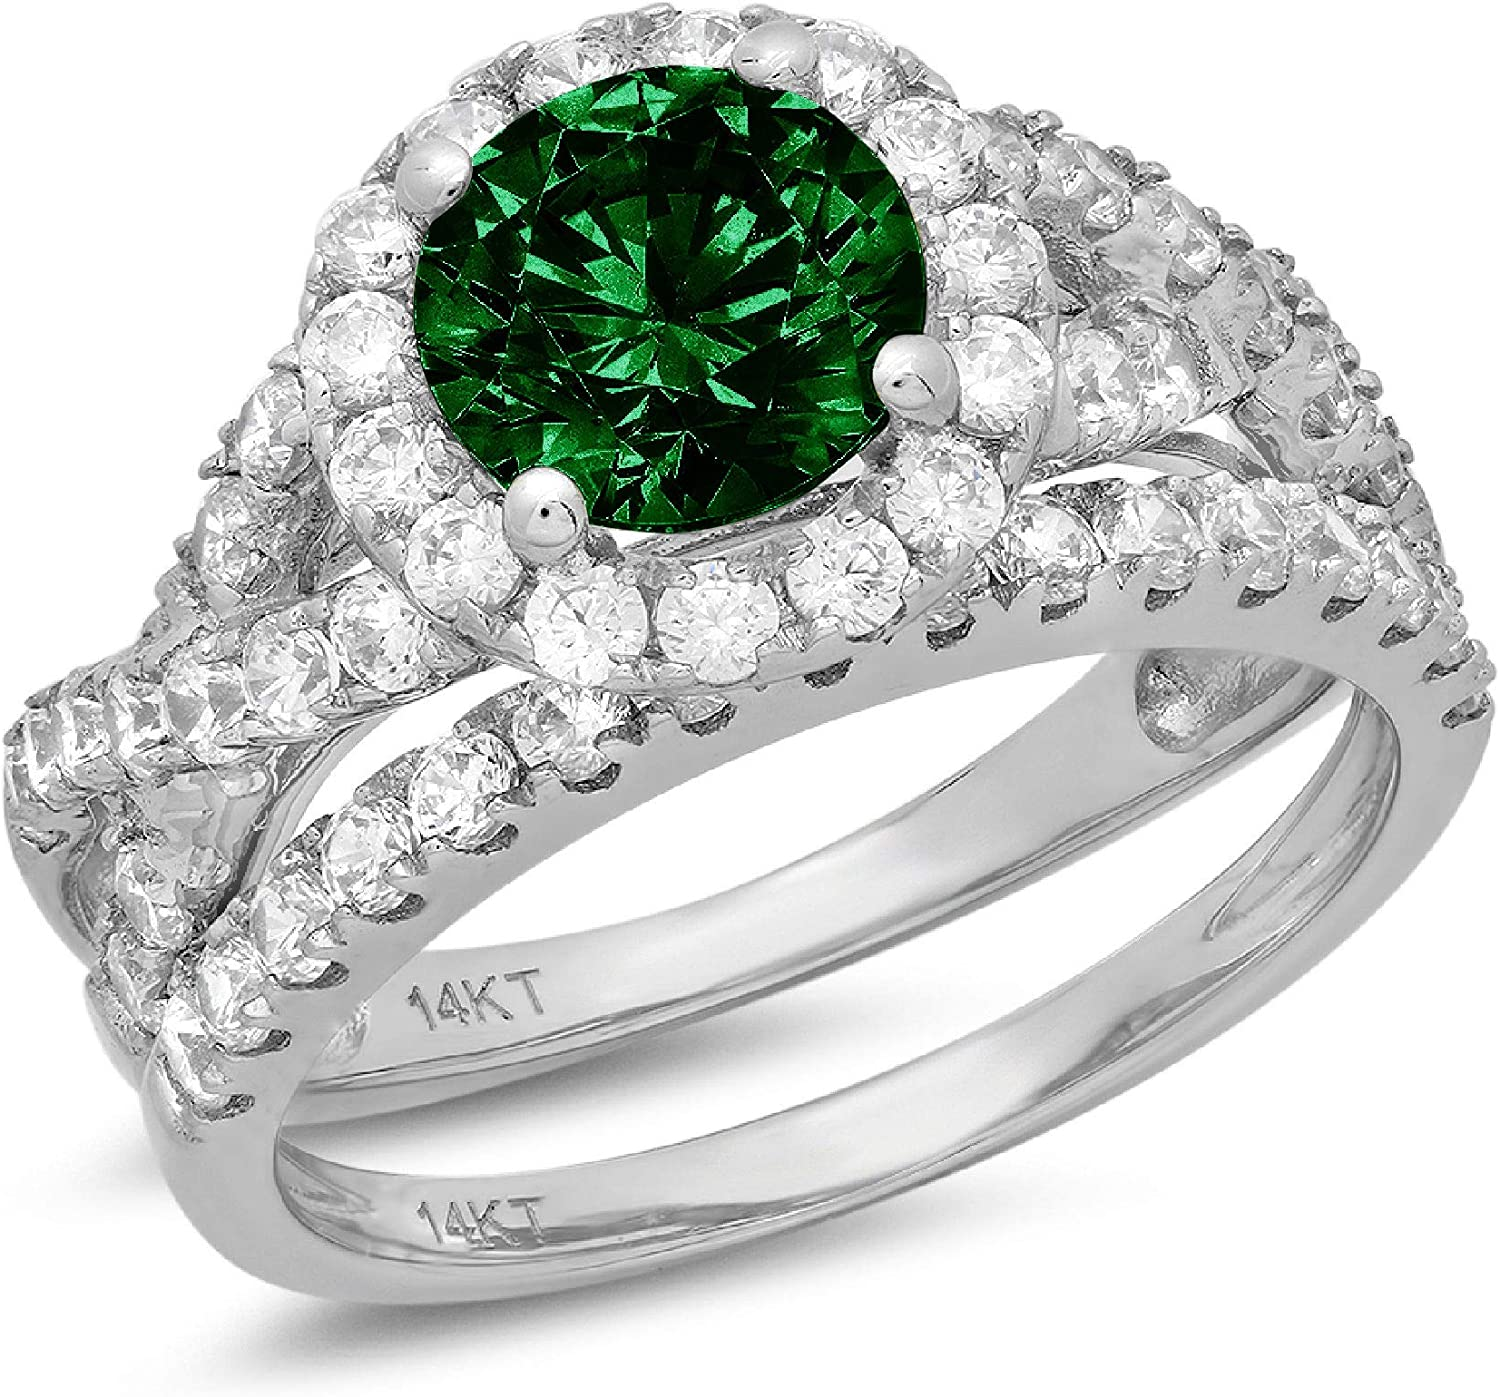 2.5 ct Round Cut Halo Split Shank Solitaire with Accent Genuine Flawless Simulated Emerald Designer Statement Classic Engagement Bridal Ring Band wedding Set Solid 18K White Gold